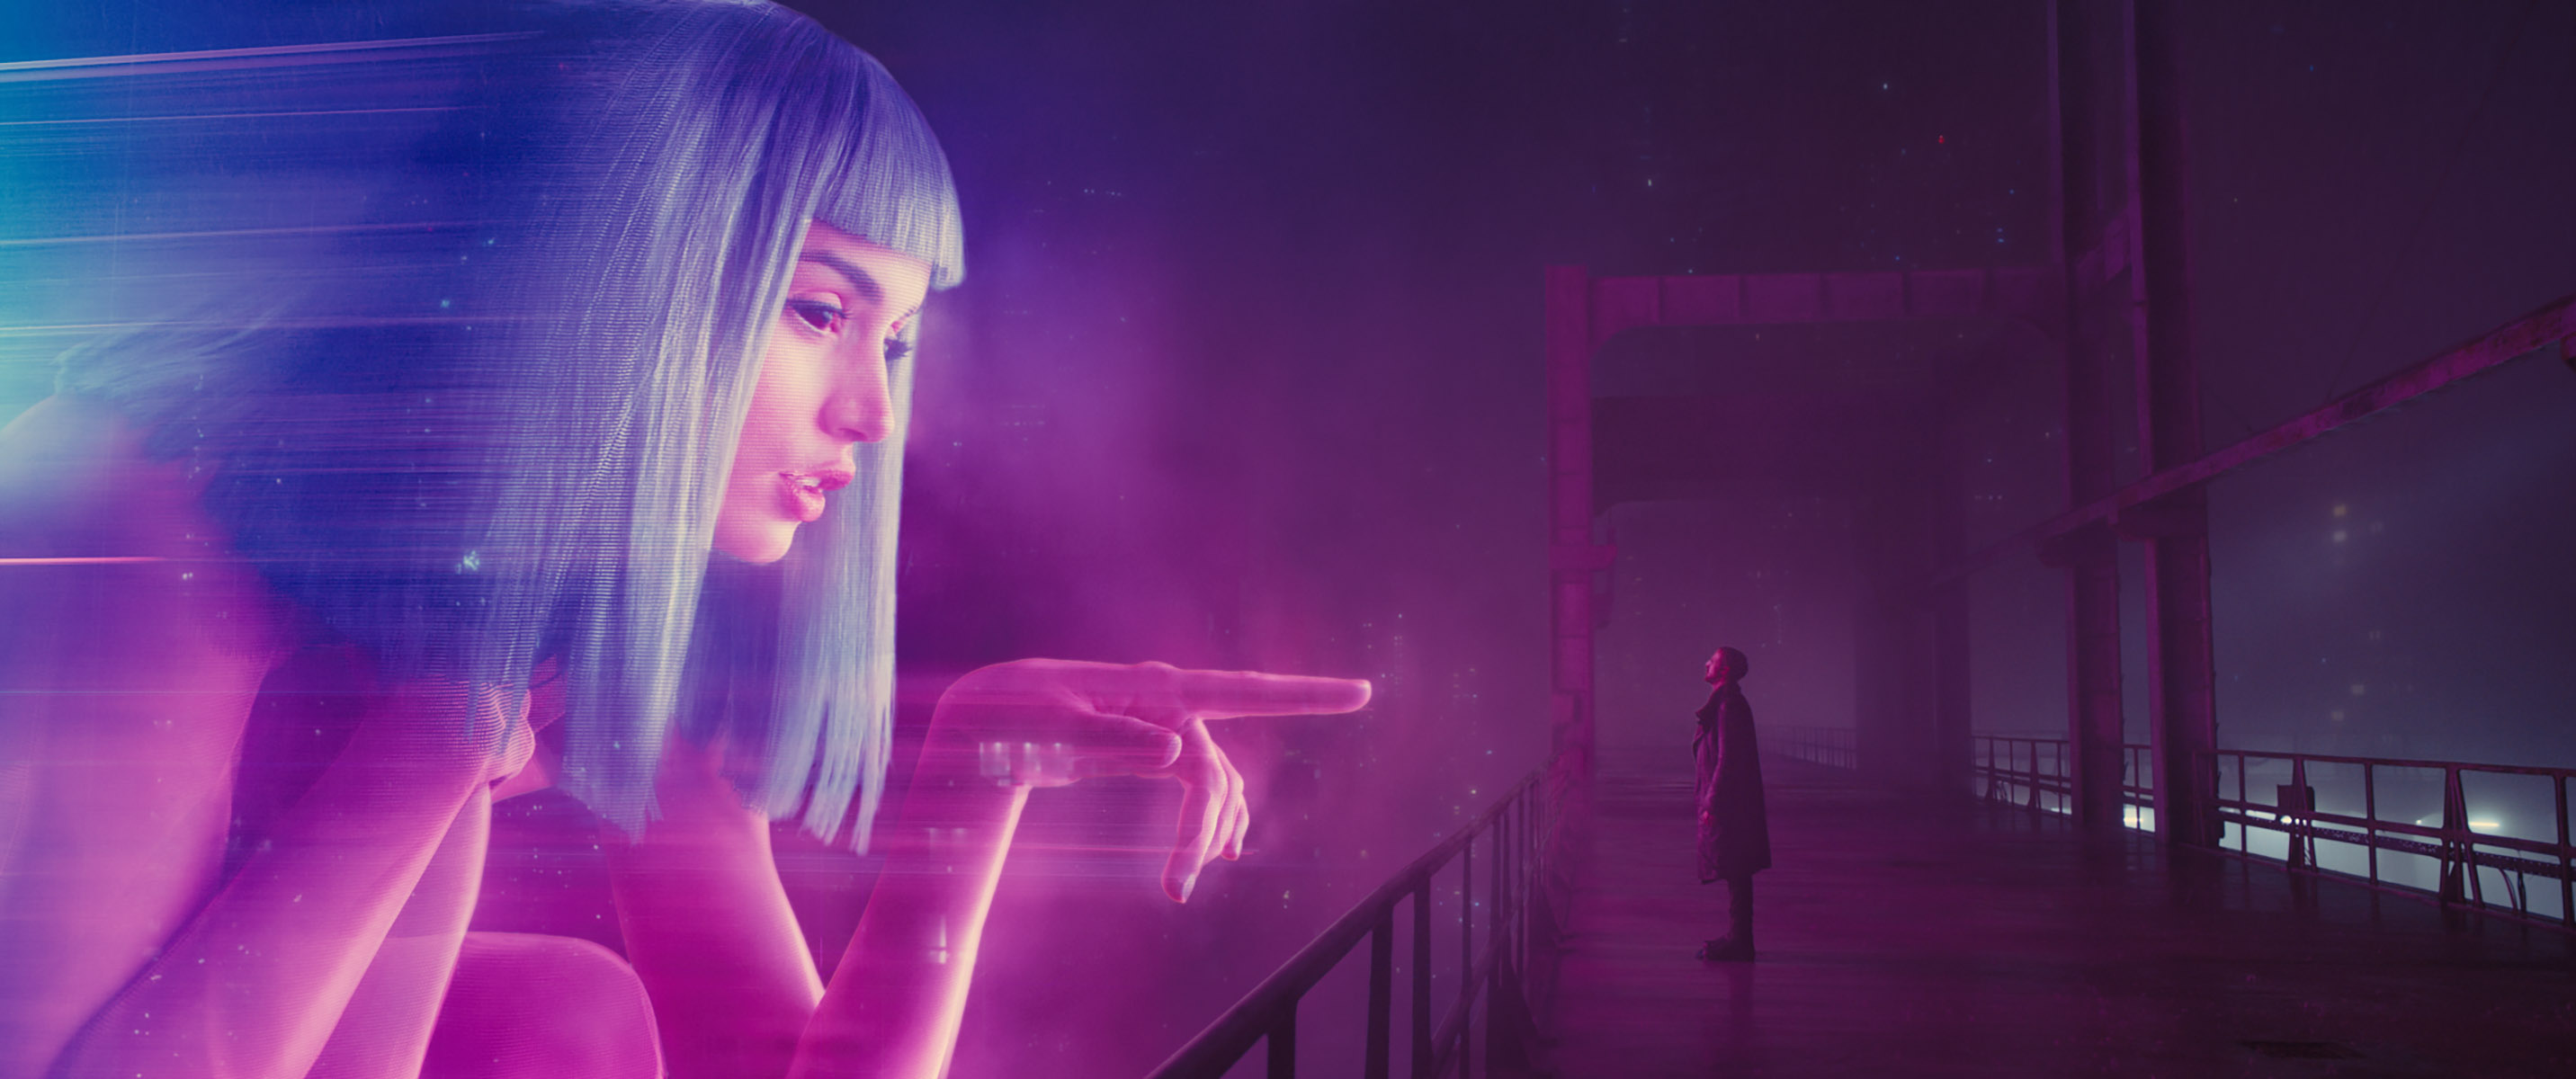 Blade Runner 2049 Review 4